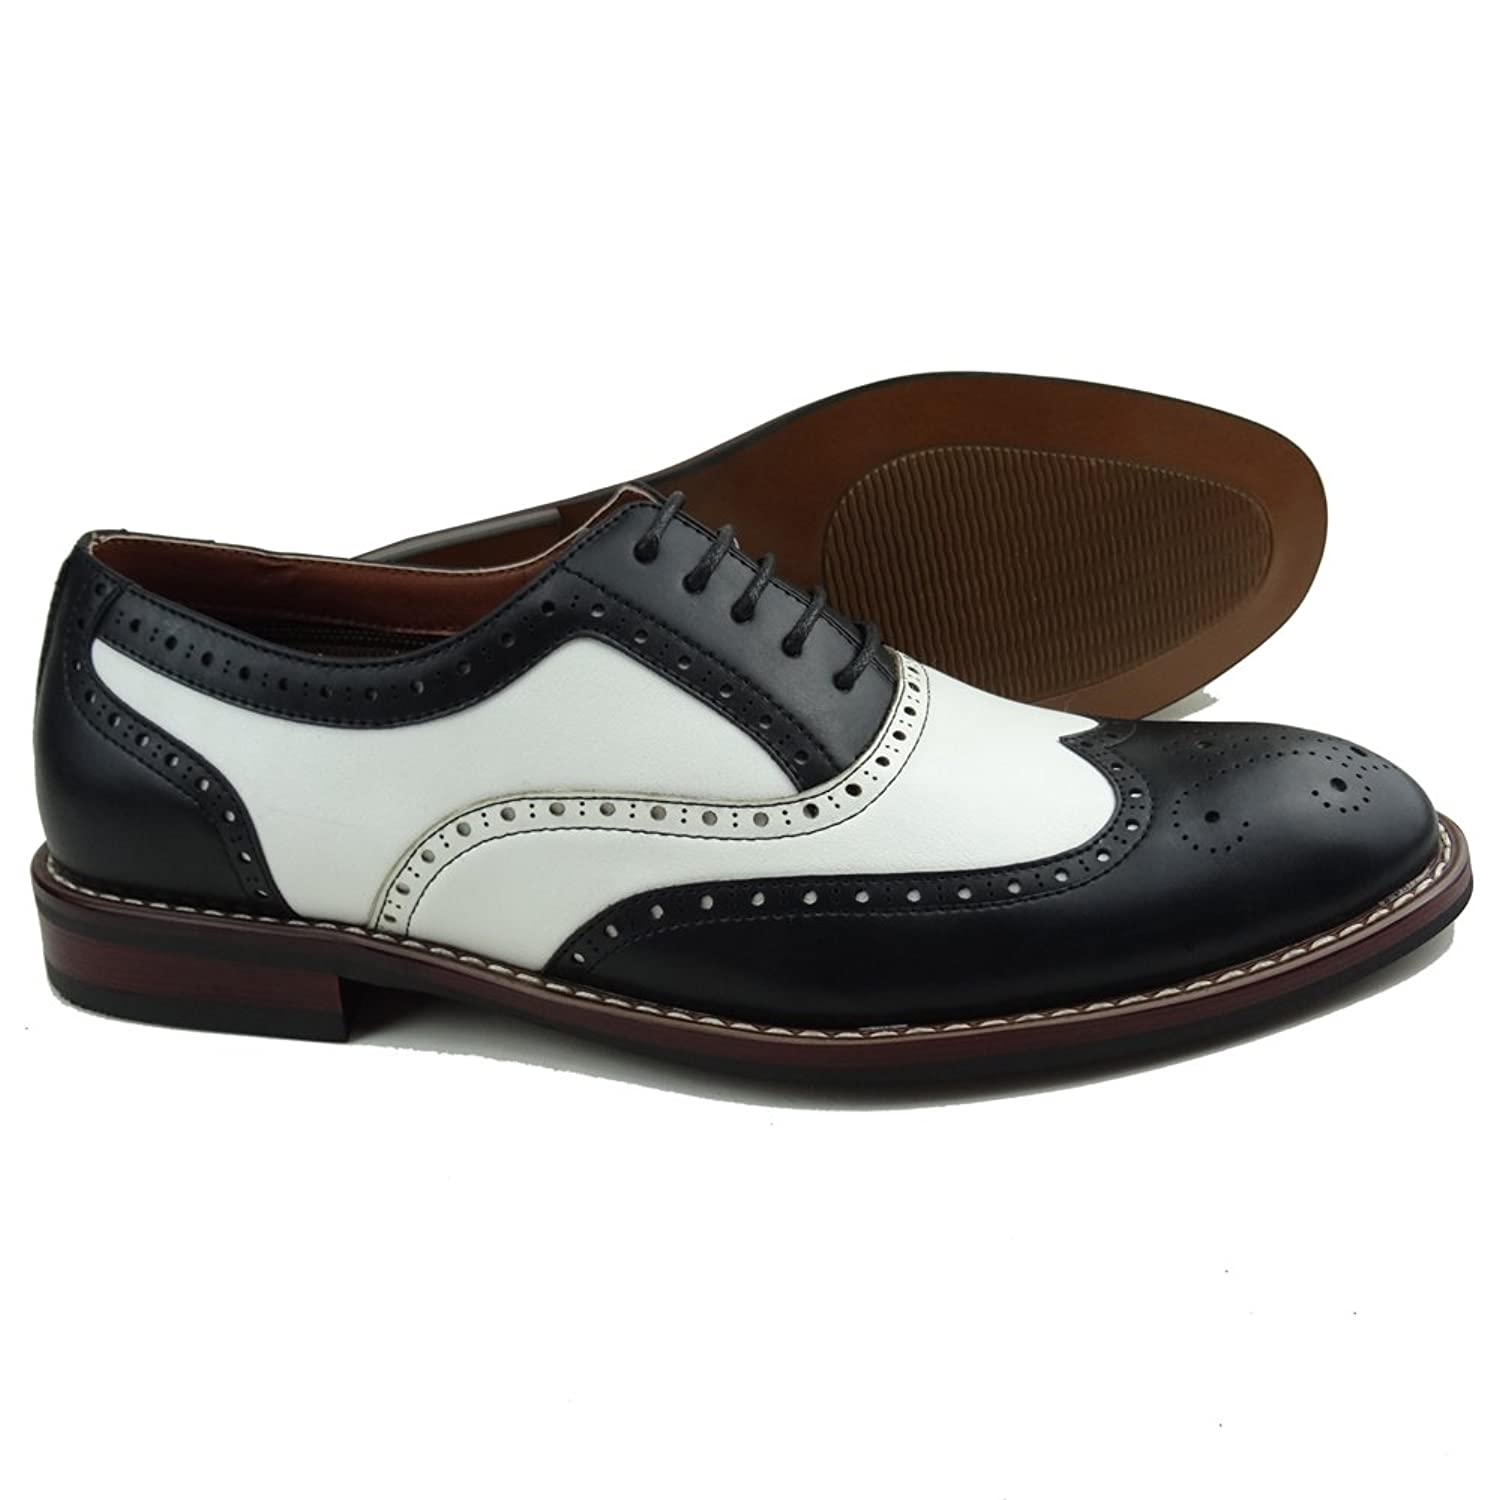 Mens 1920s Shoes History and Buying Guide  Mens Black White Lace Up Wing Tip Perforated Oxford Dress Shoes $34.99 AT vintagedancer.com